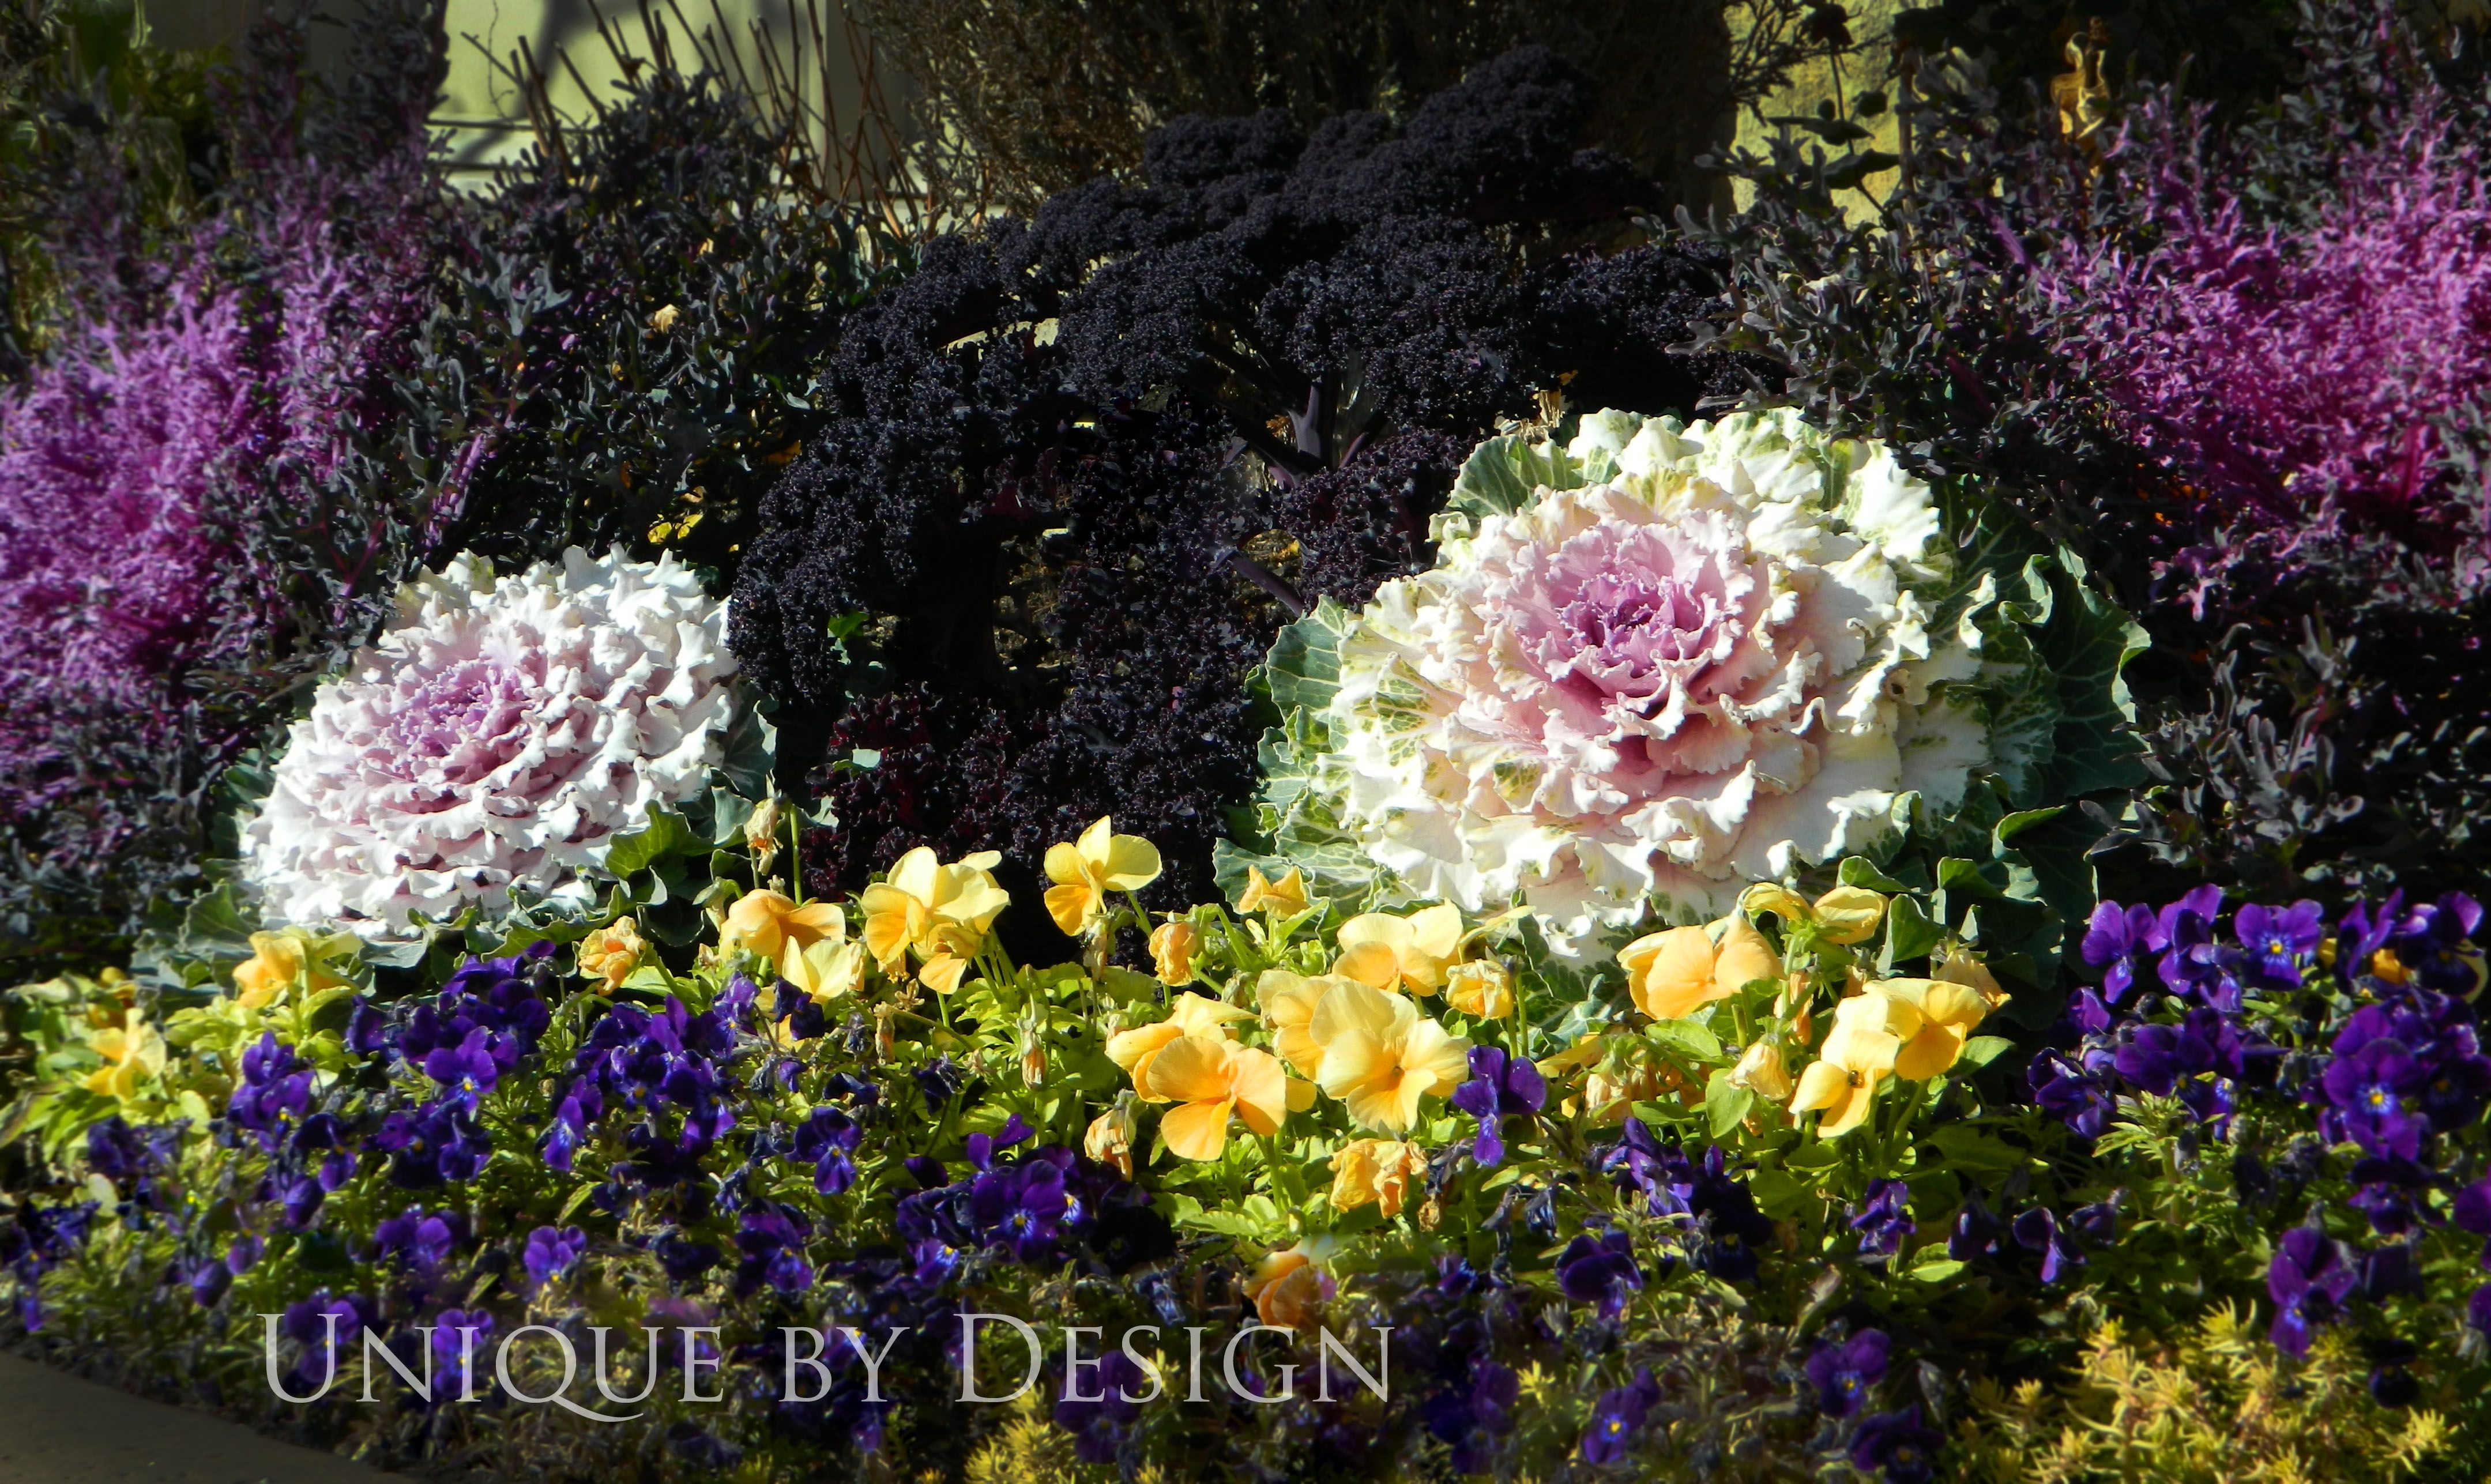 Unique By Design Landscaping Containers Fall Plants Ornamental Cabbage Autumn Garden